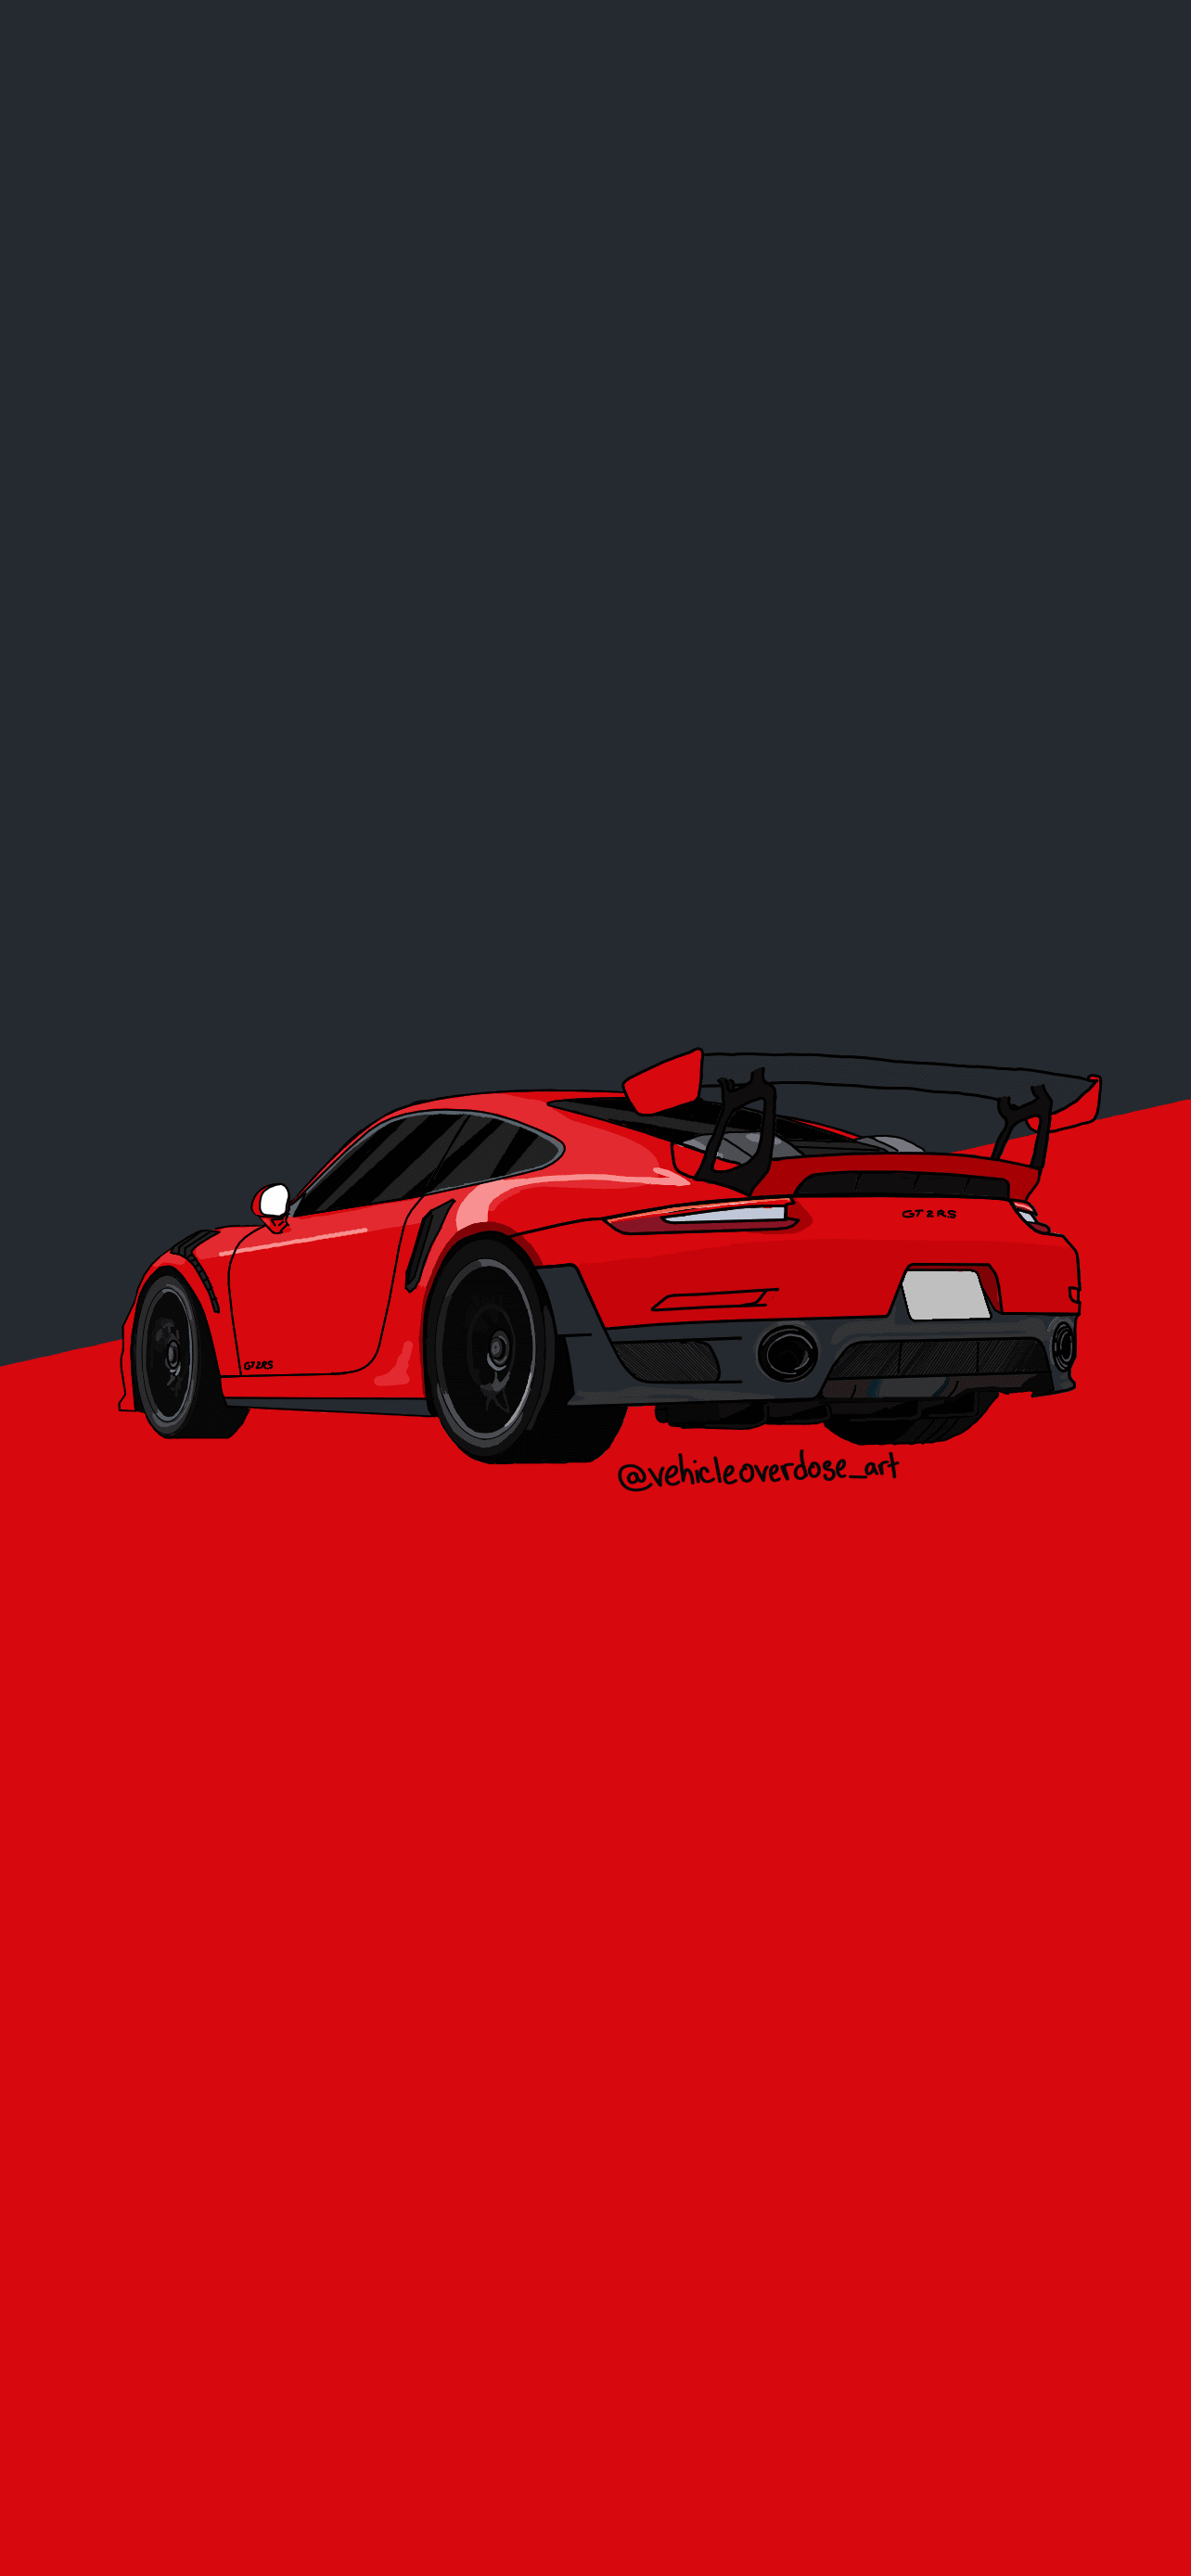 Find your perfect wallpaper and download the image or photo for free. Draw Your Car As A Wallpaper By Frantuz Fiverr